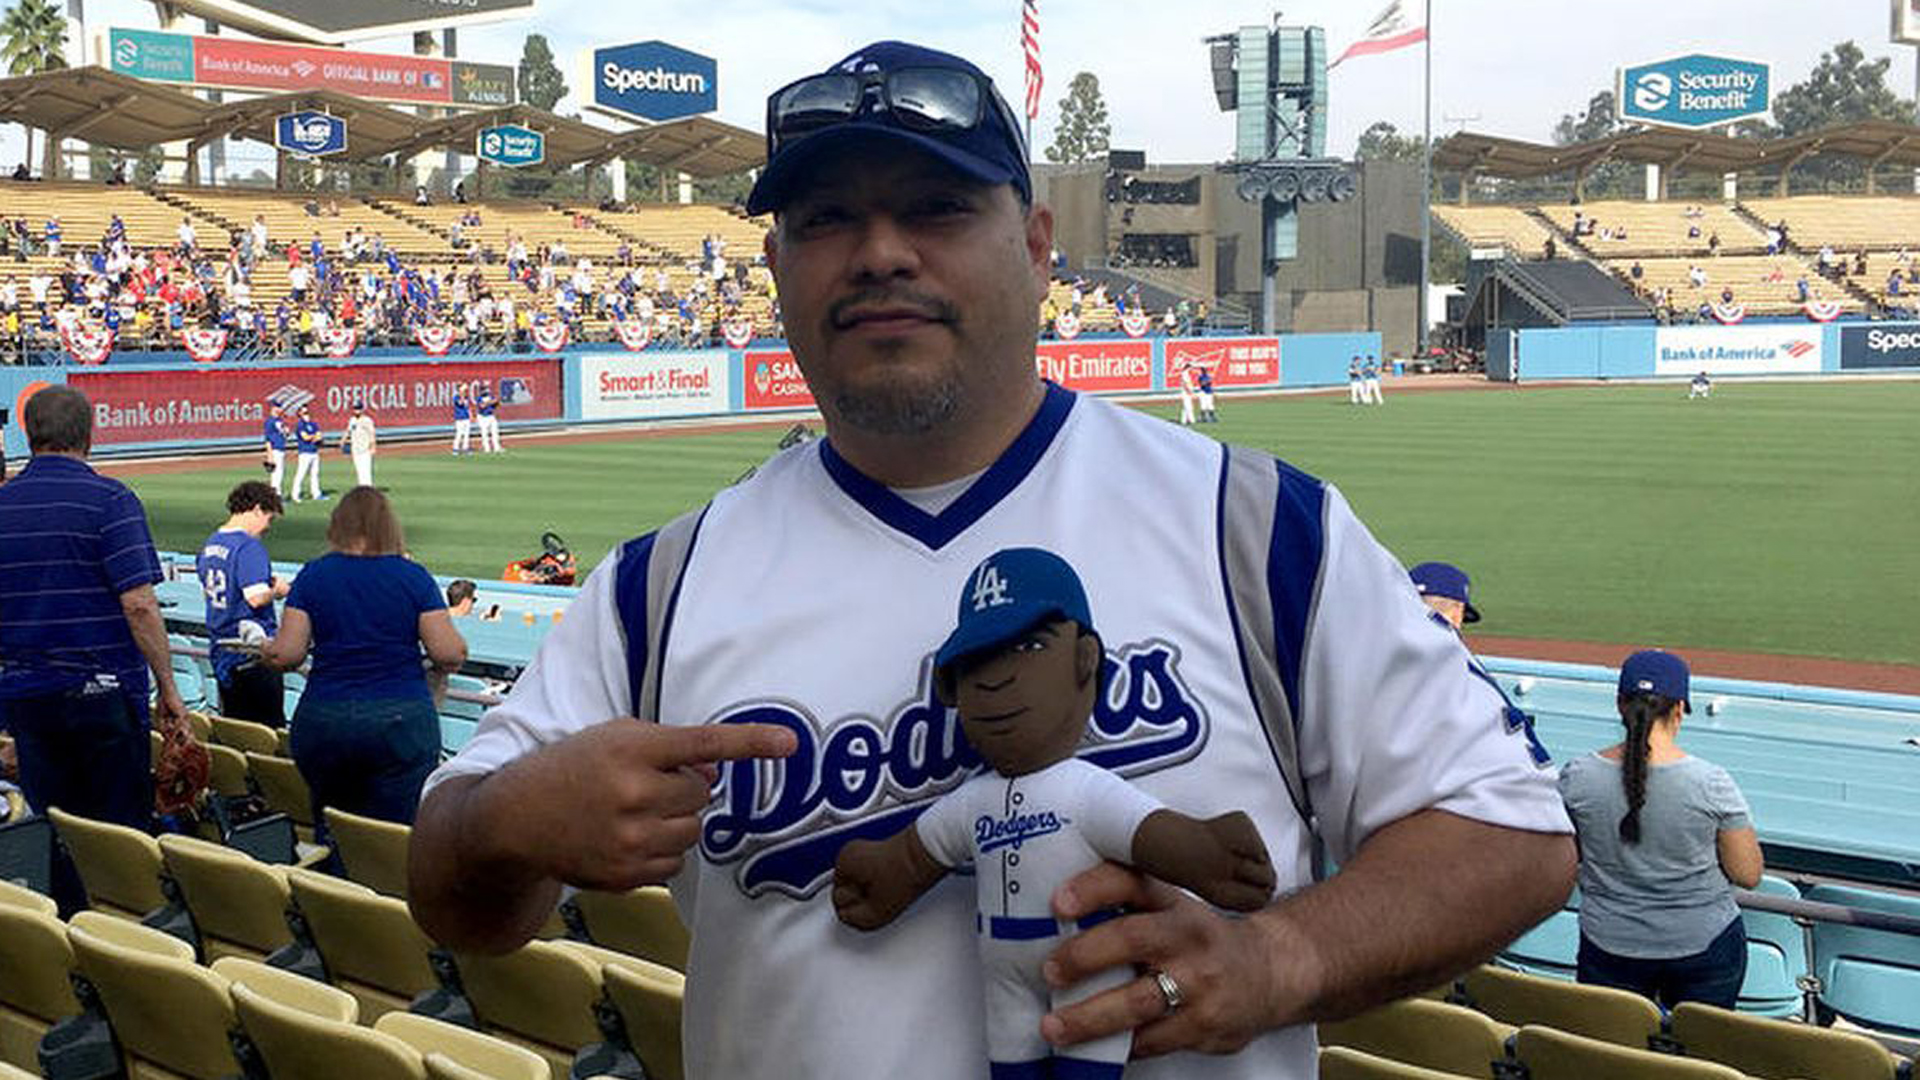 Isaac Tellez lives in Arkansas but he's a die-hard Dodgers fan. Here, he carries a stuffed doll of Yasiel Puig, who he calls 'Lil Puig,' into Game 5 of the 2018 World Series against the Boston Red Sox at Dodger Stadium in L.A. on Oct. 28, 2018. (Credit: Hailey Branson-Potts / Los Angeles Times)